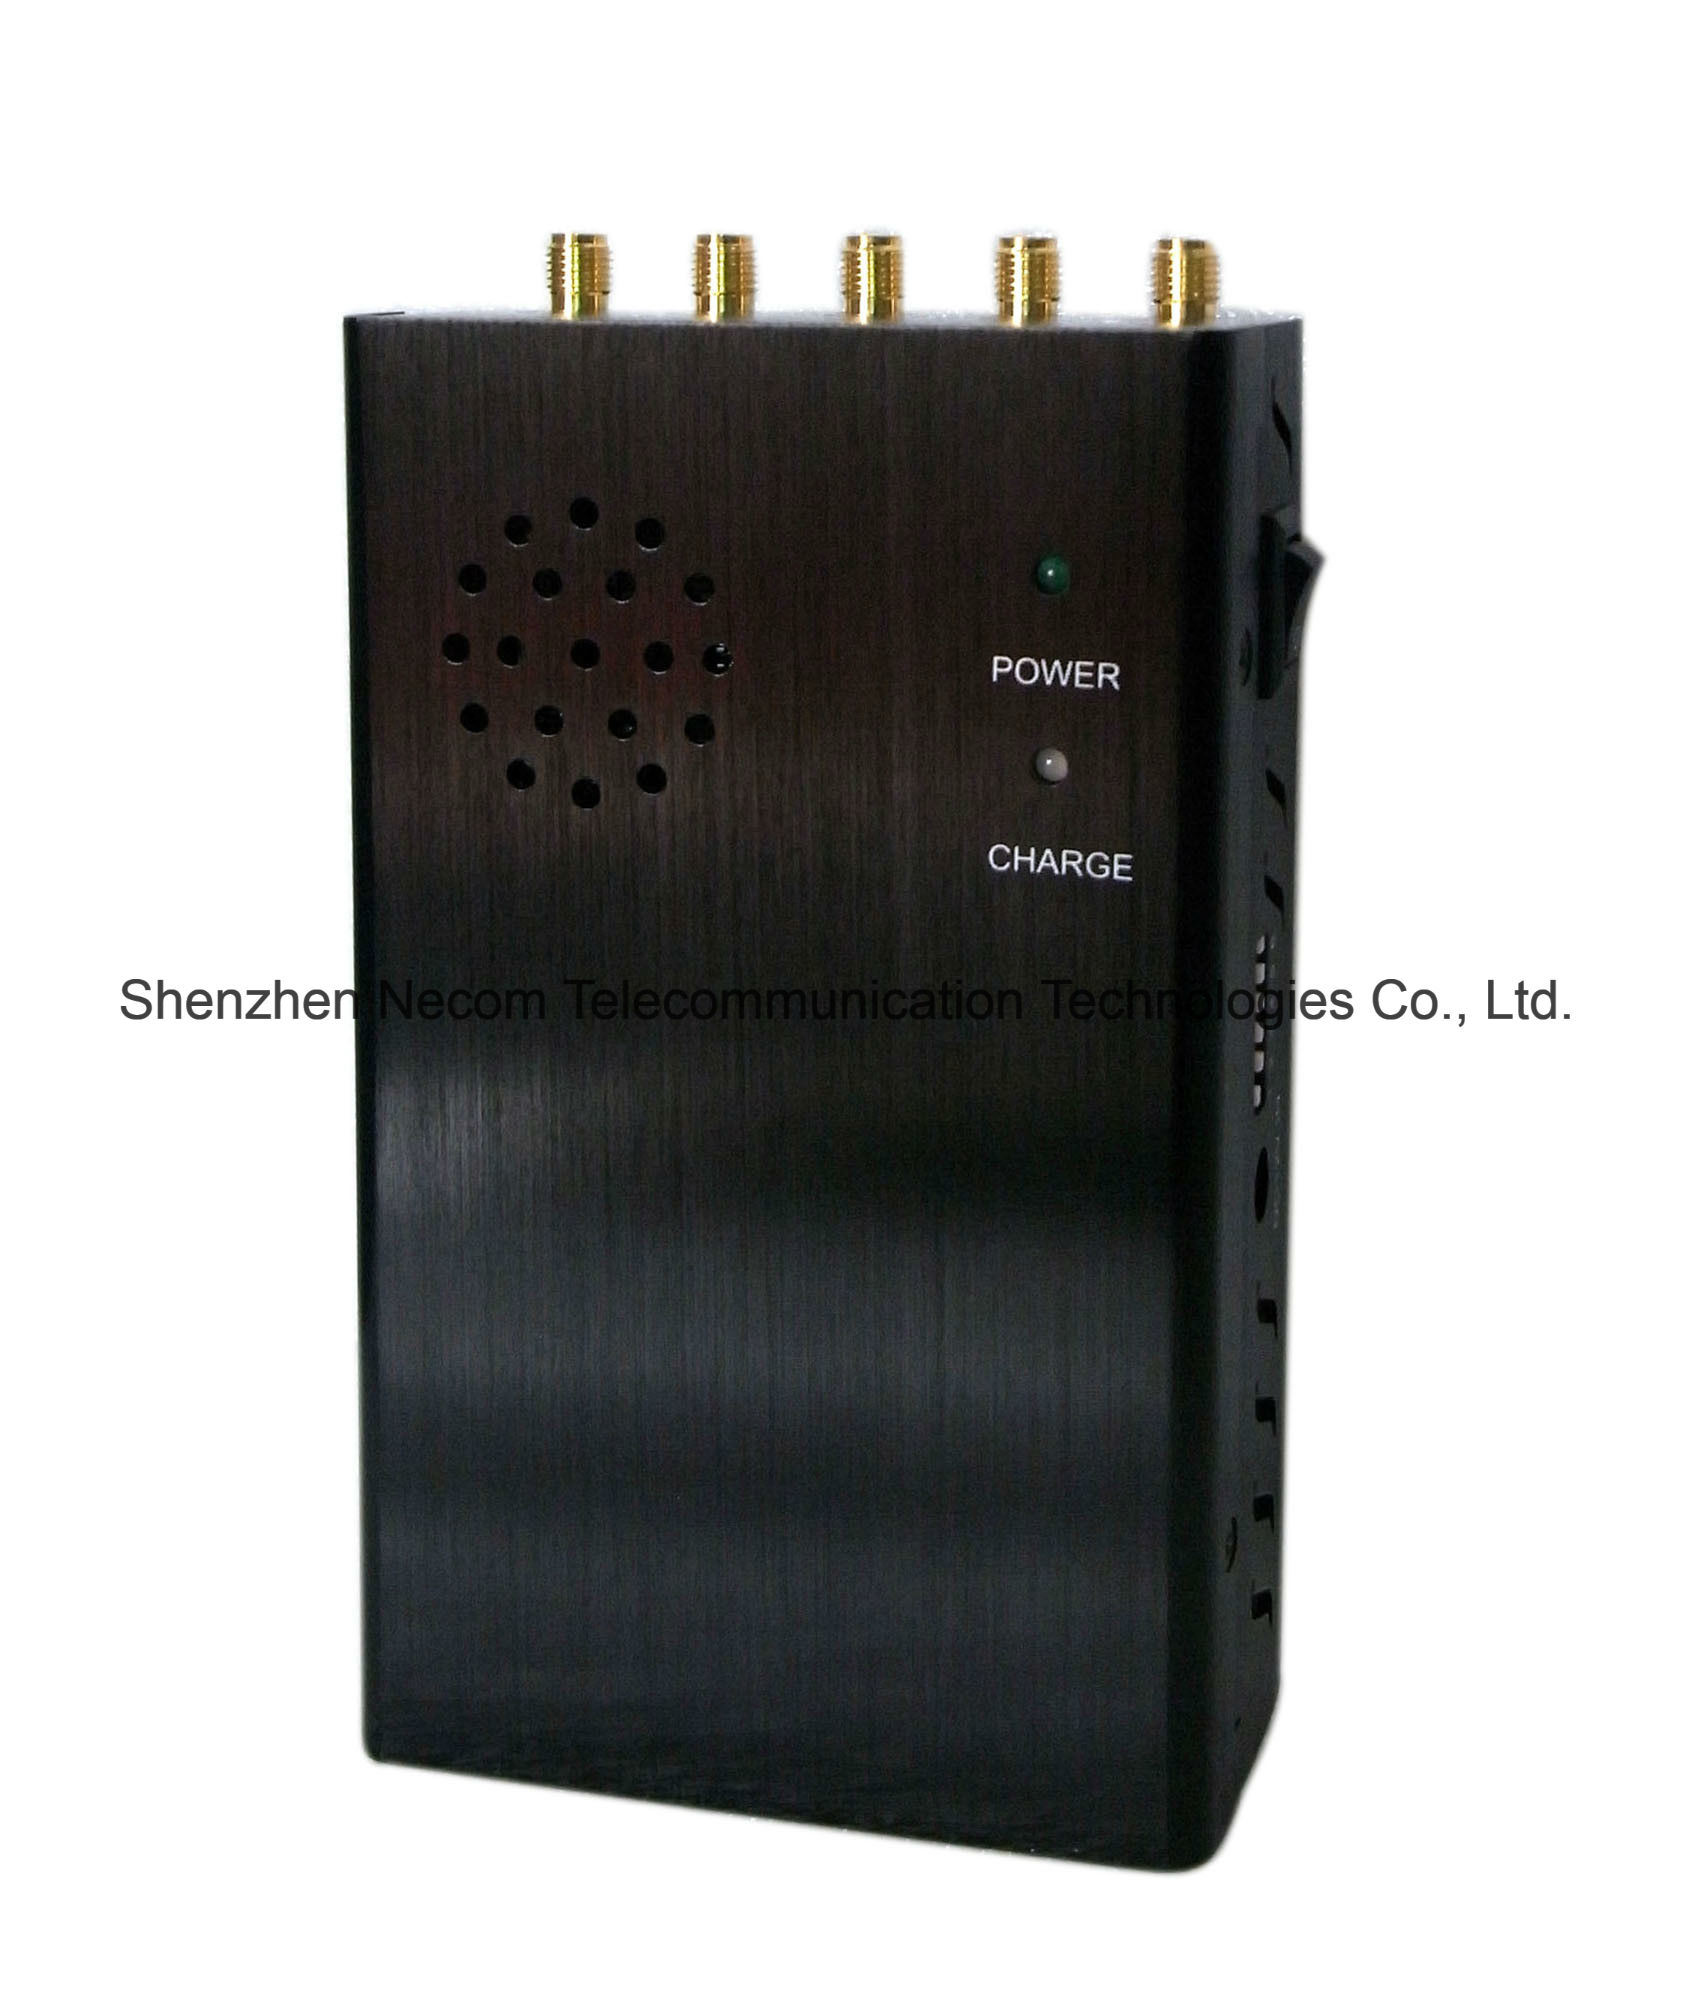 phone jammer 4g verizon - China Wireless Signal Jammer with Good Quality&Favourable Price Jamming for Wired Camera, GPS Tracker, Mobile Phones, GSM Jammer/GPS Jammer /Cell Phone Jammer - China 5 Band Signal Blockers, Five Antennas Jammers